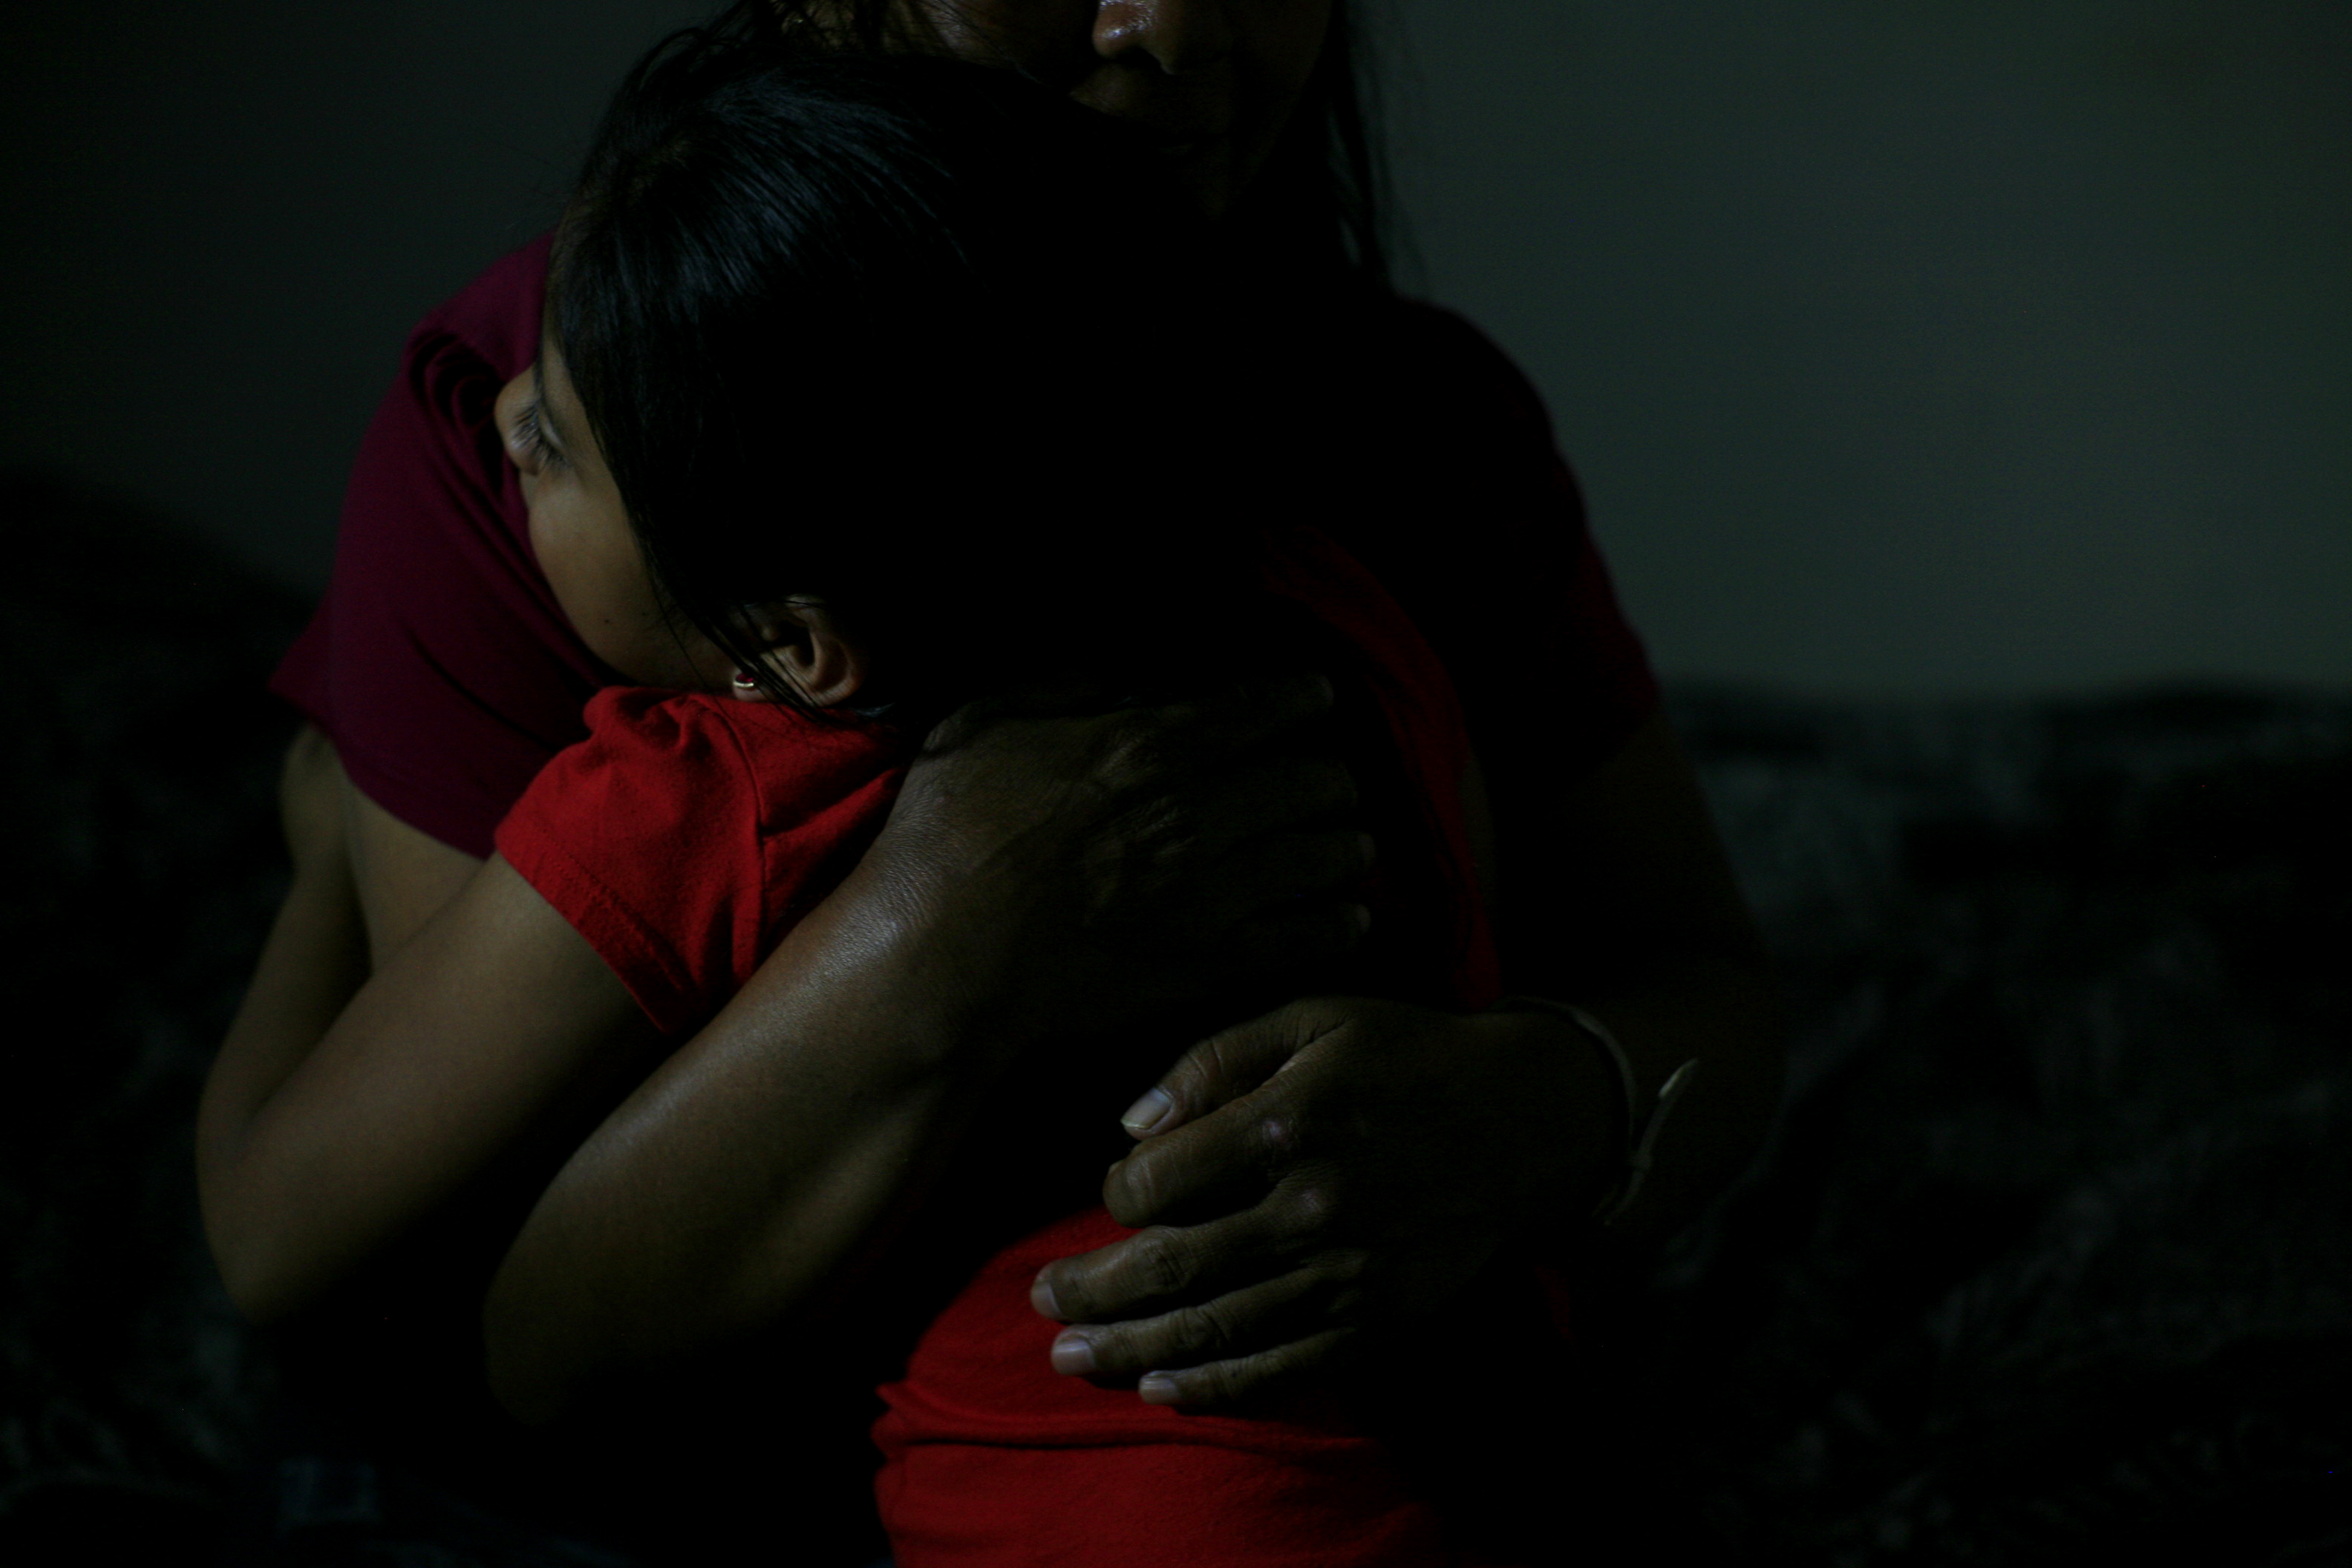 Woman embracing young girl, faces not shown